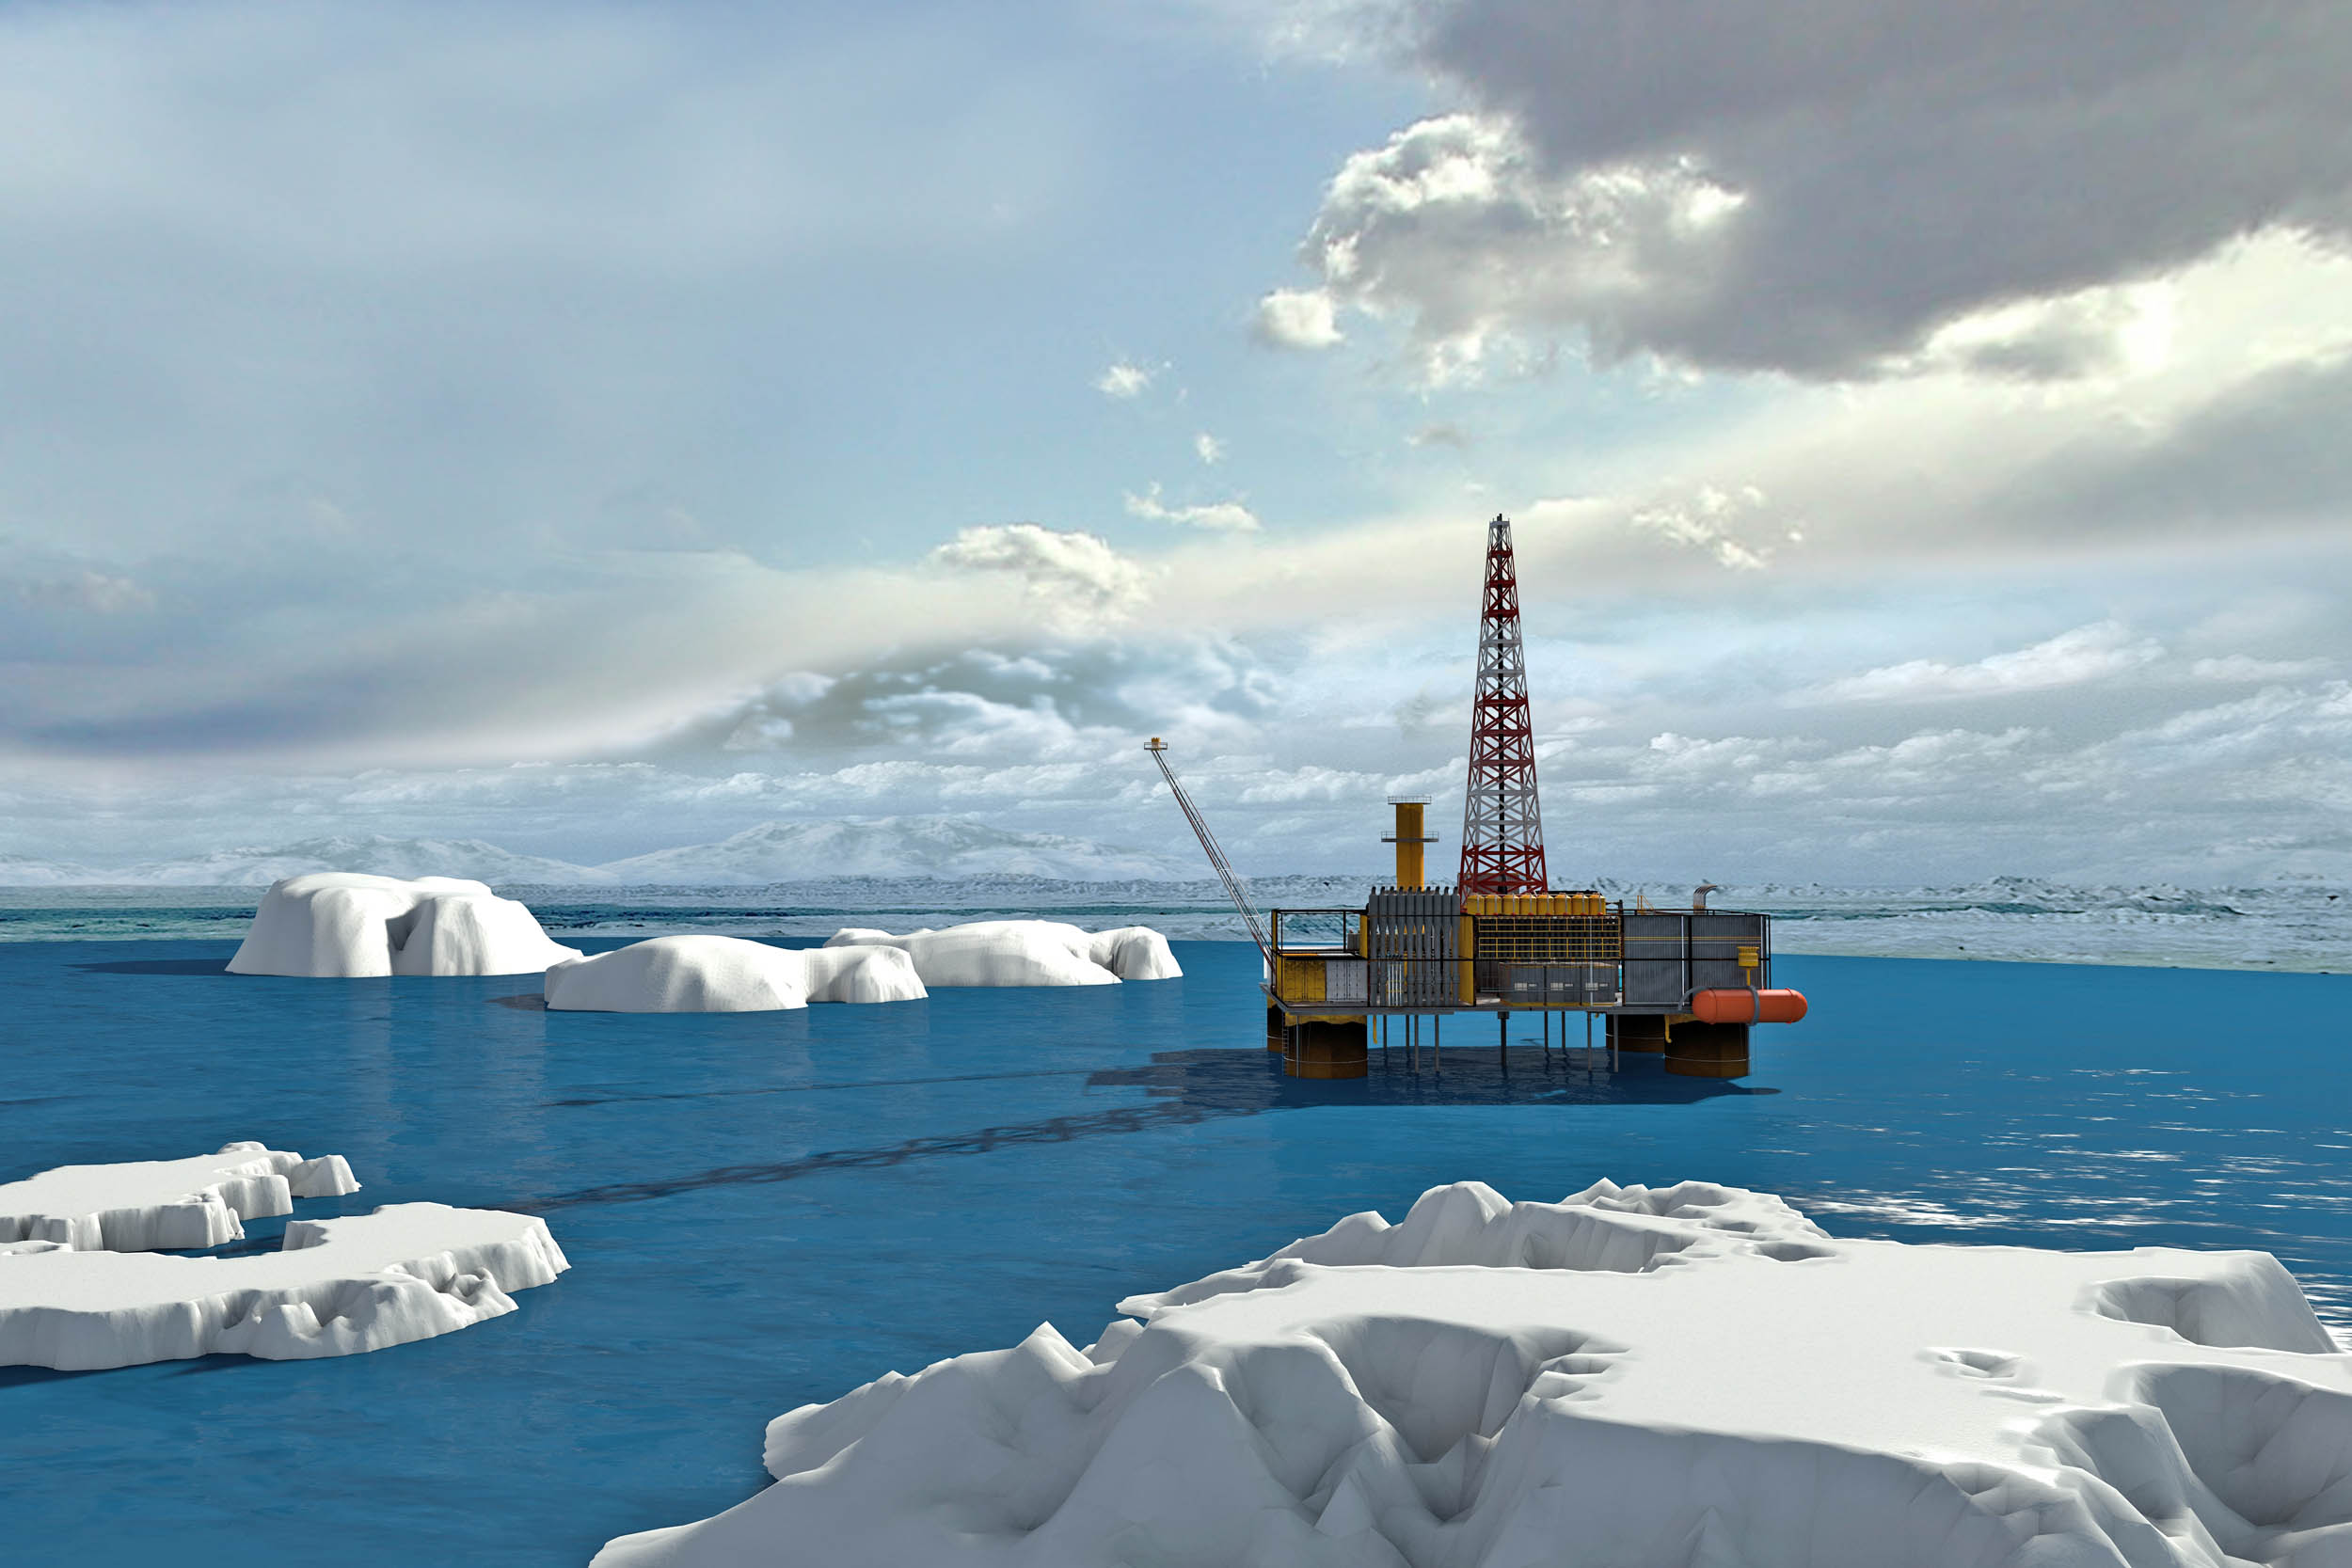 Obama administration blocks new oil and gas drilling in the Arctic Ocean